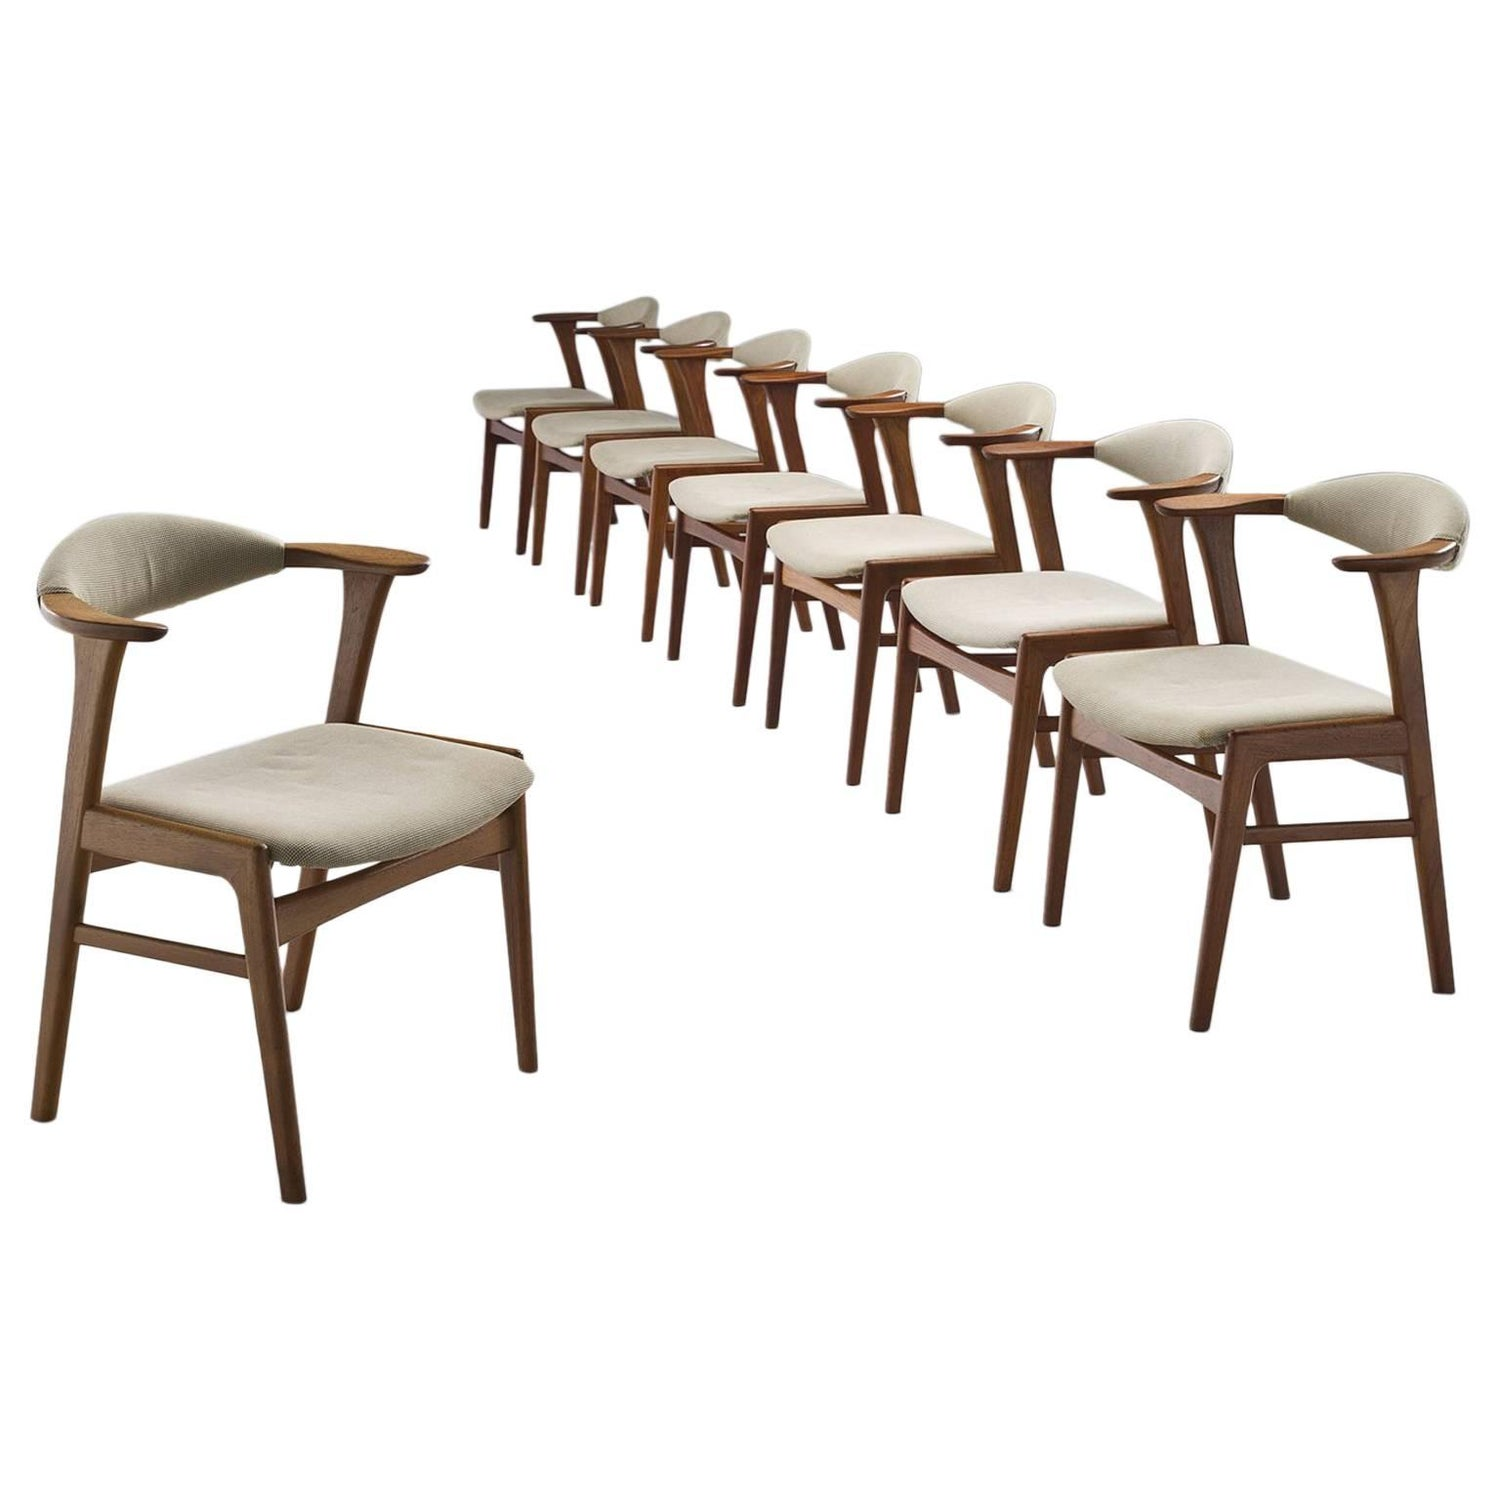 Of four chairs in oak and patinated cognac leather for sale at 1stdibs - Erik Kirkegaard Set Of Eight Teak Dining Chairs